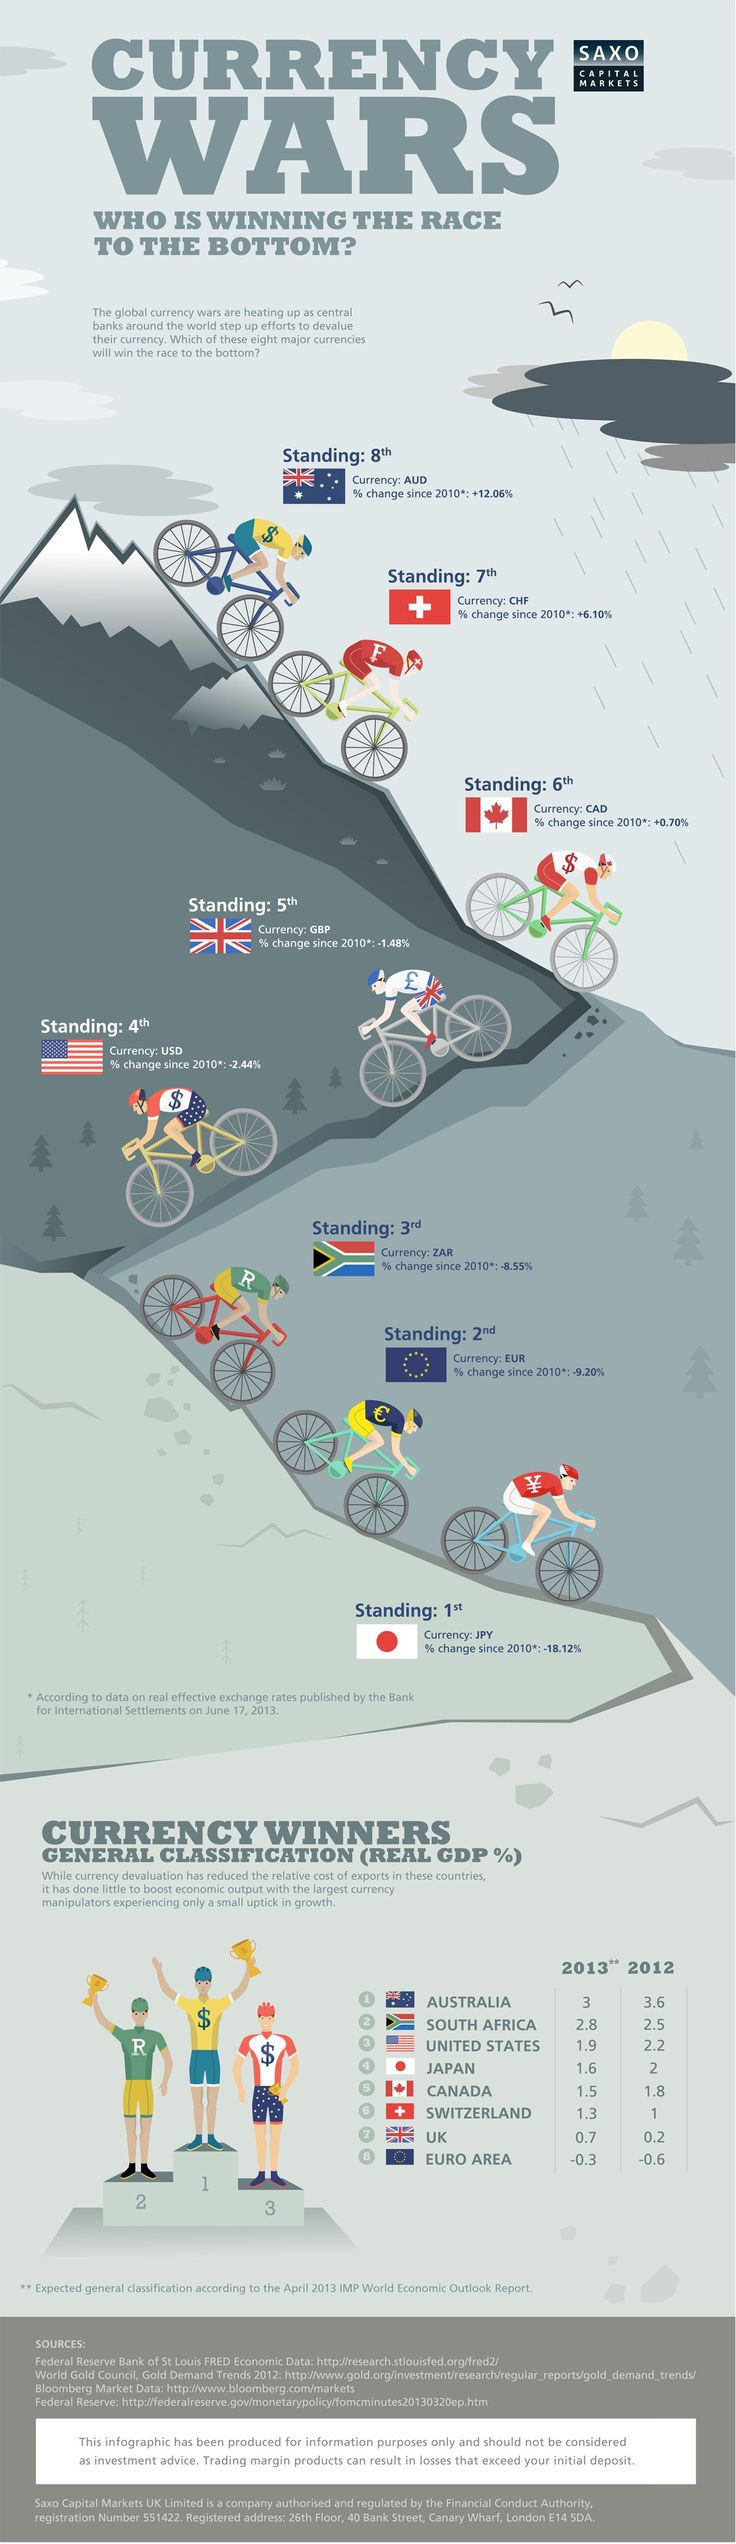 [Infographic] Who Will Win the Race to the Bottom in the Latest Currency War?